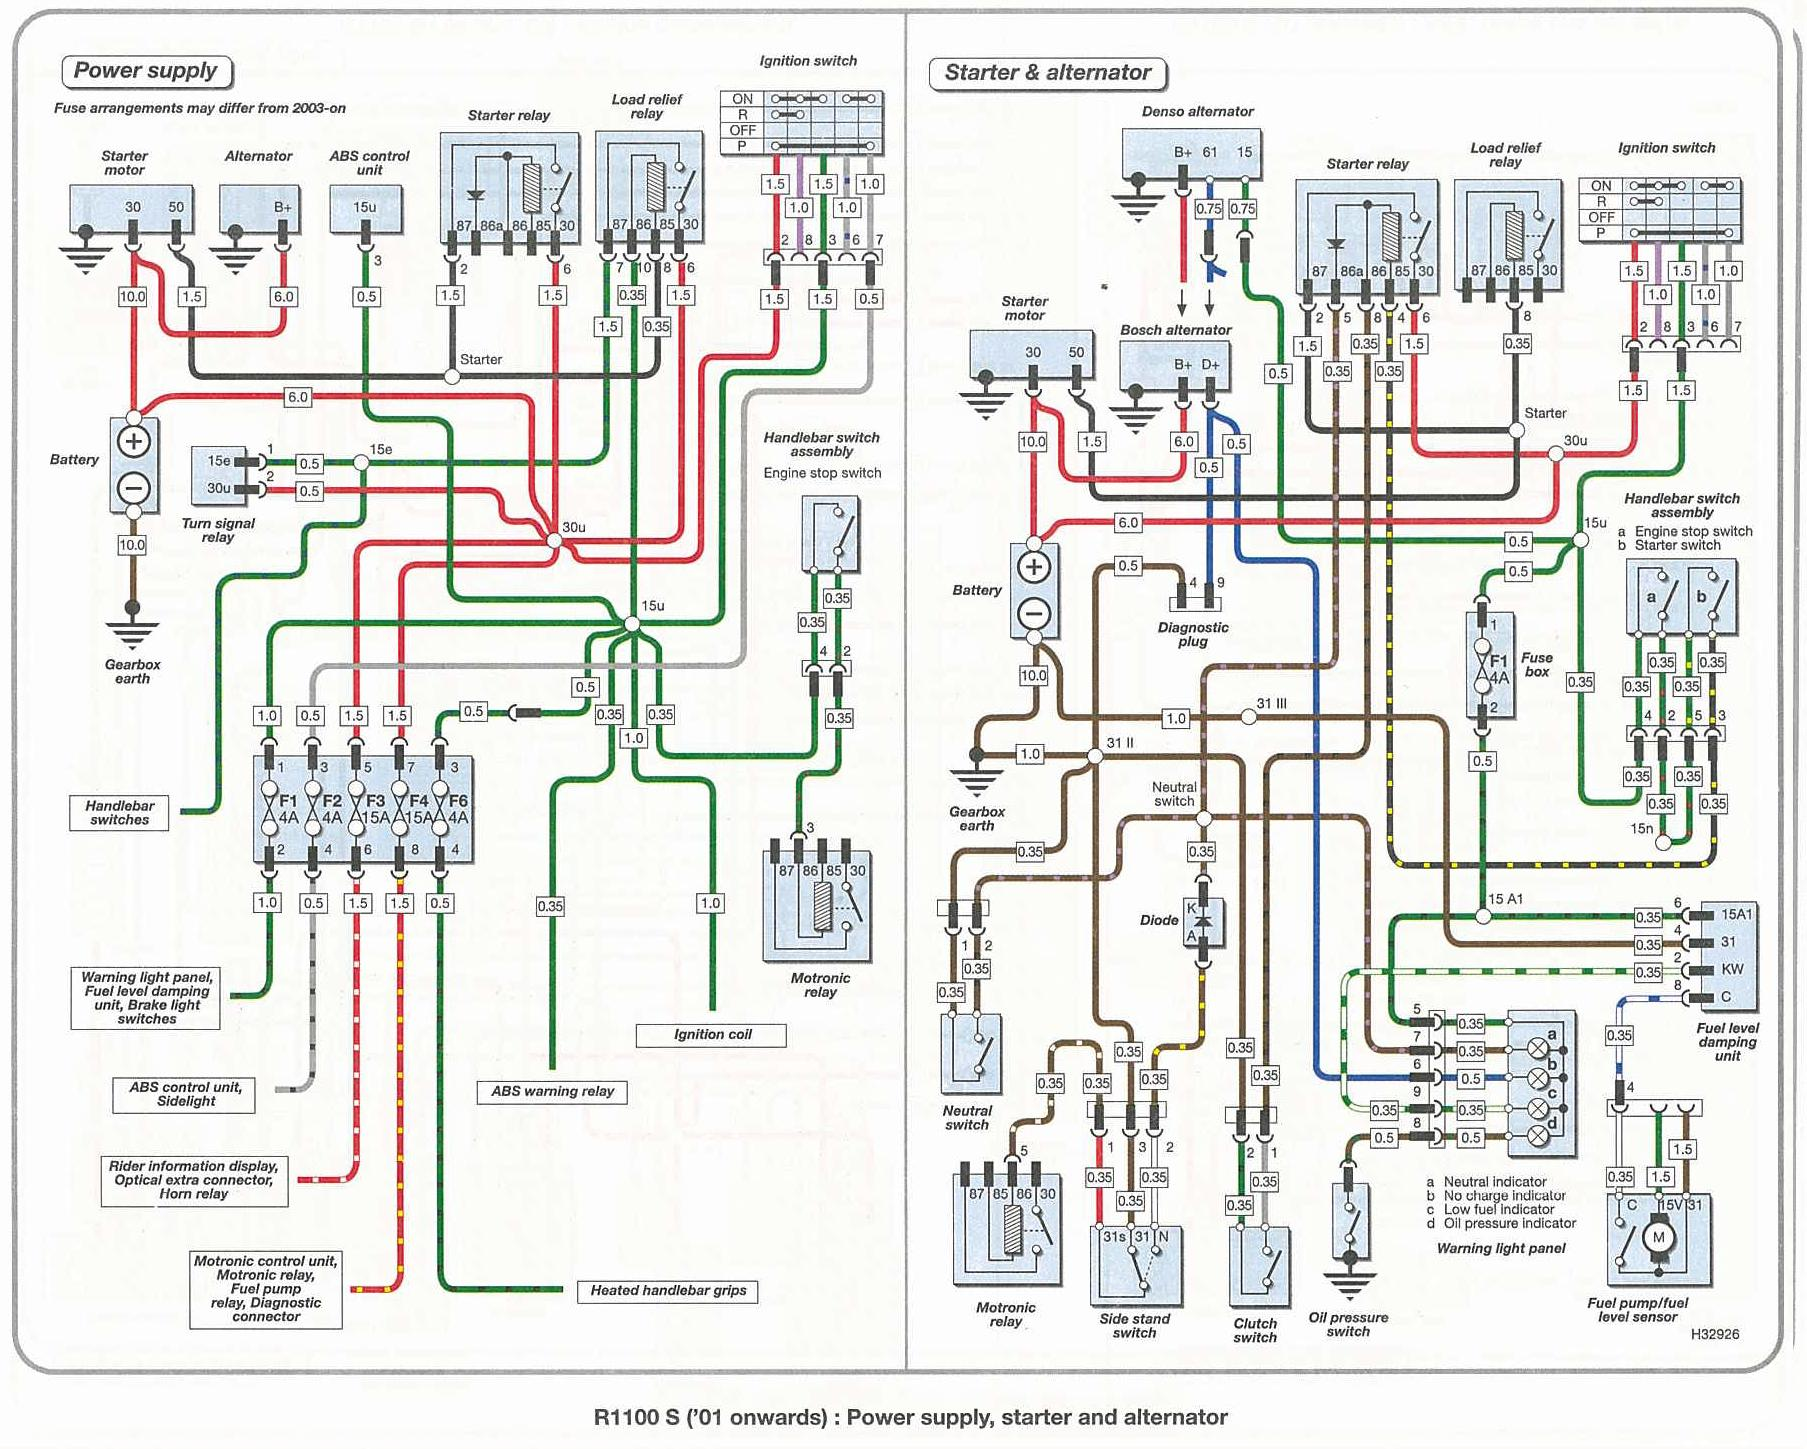 wiring05 bmw r1100s wiring diagrams bmw e38 wiring diagram at webbmarketing.co